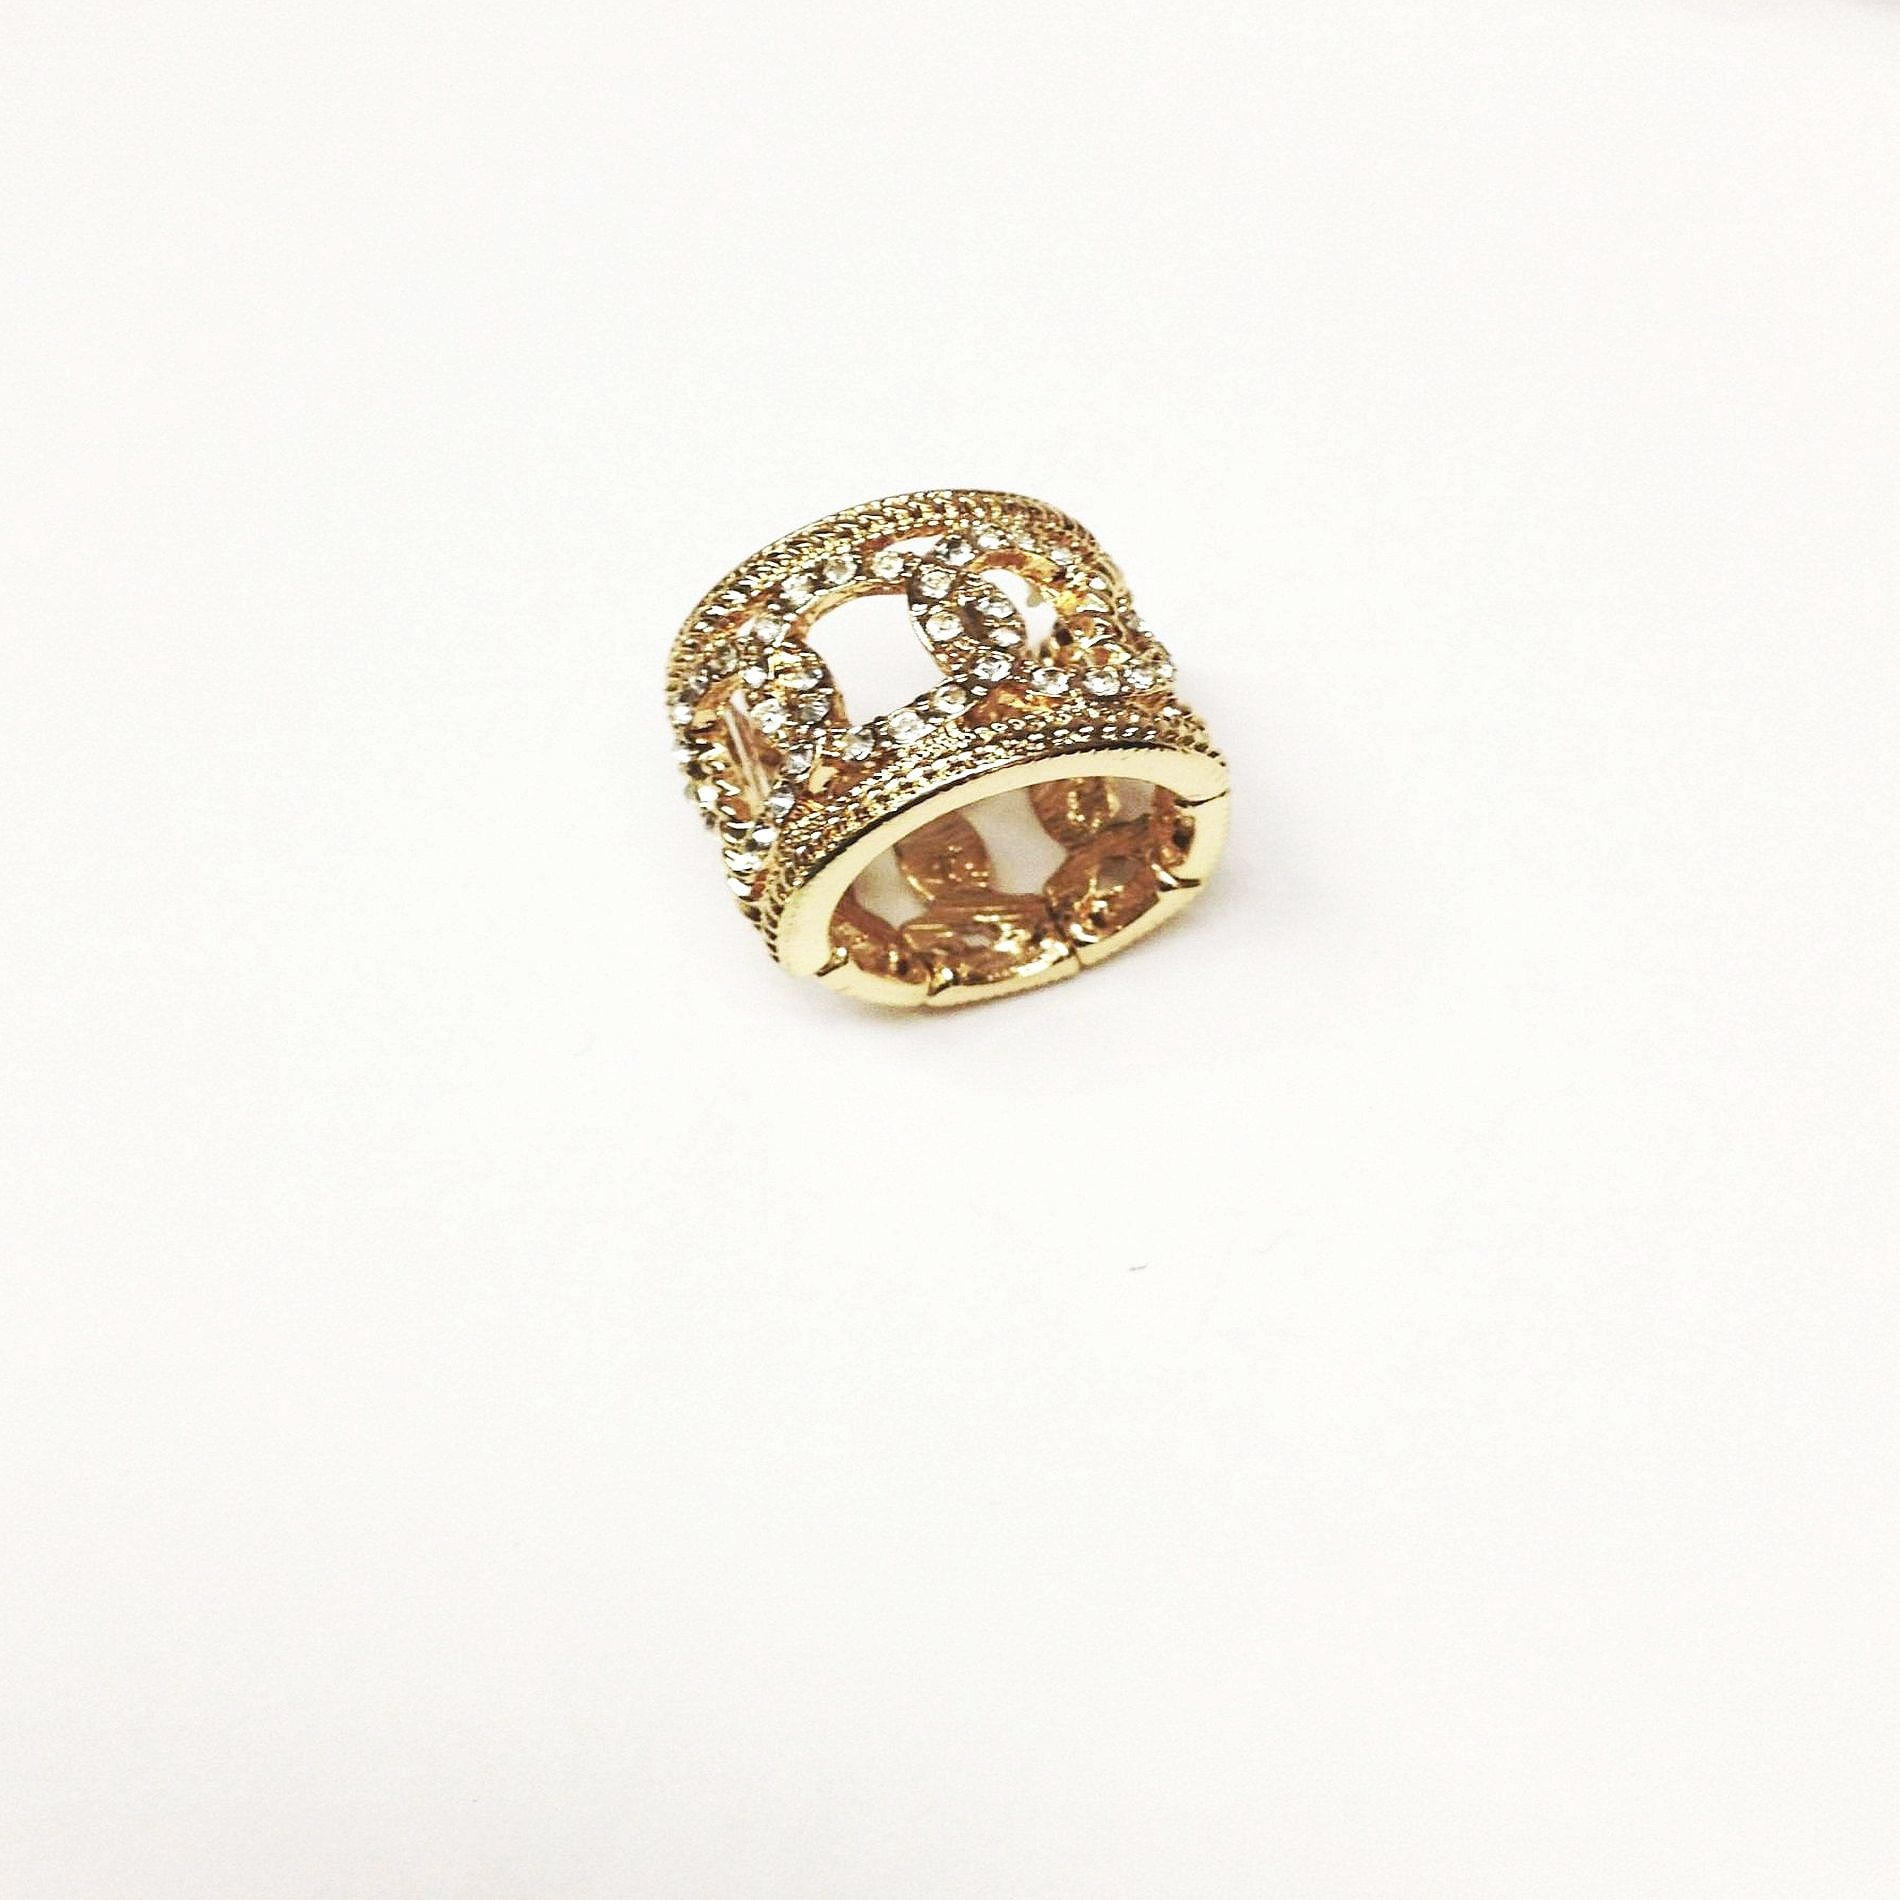 Attention Women's Rhinestone Cocktail Ring - Goldtone